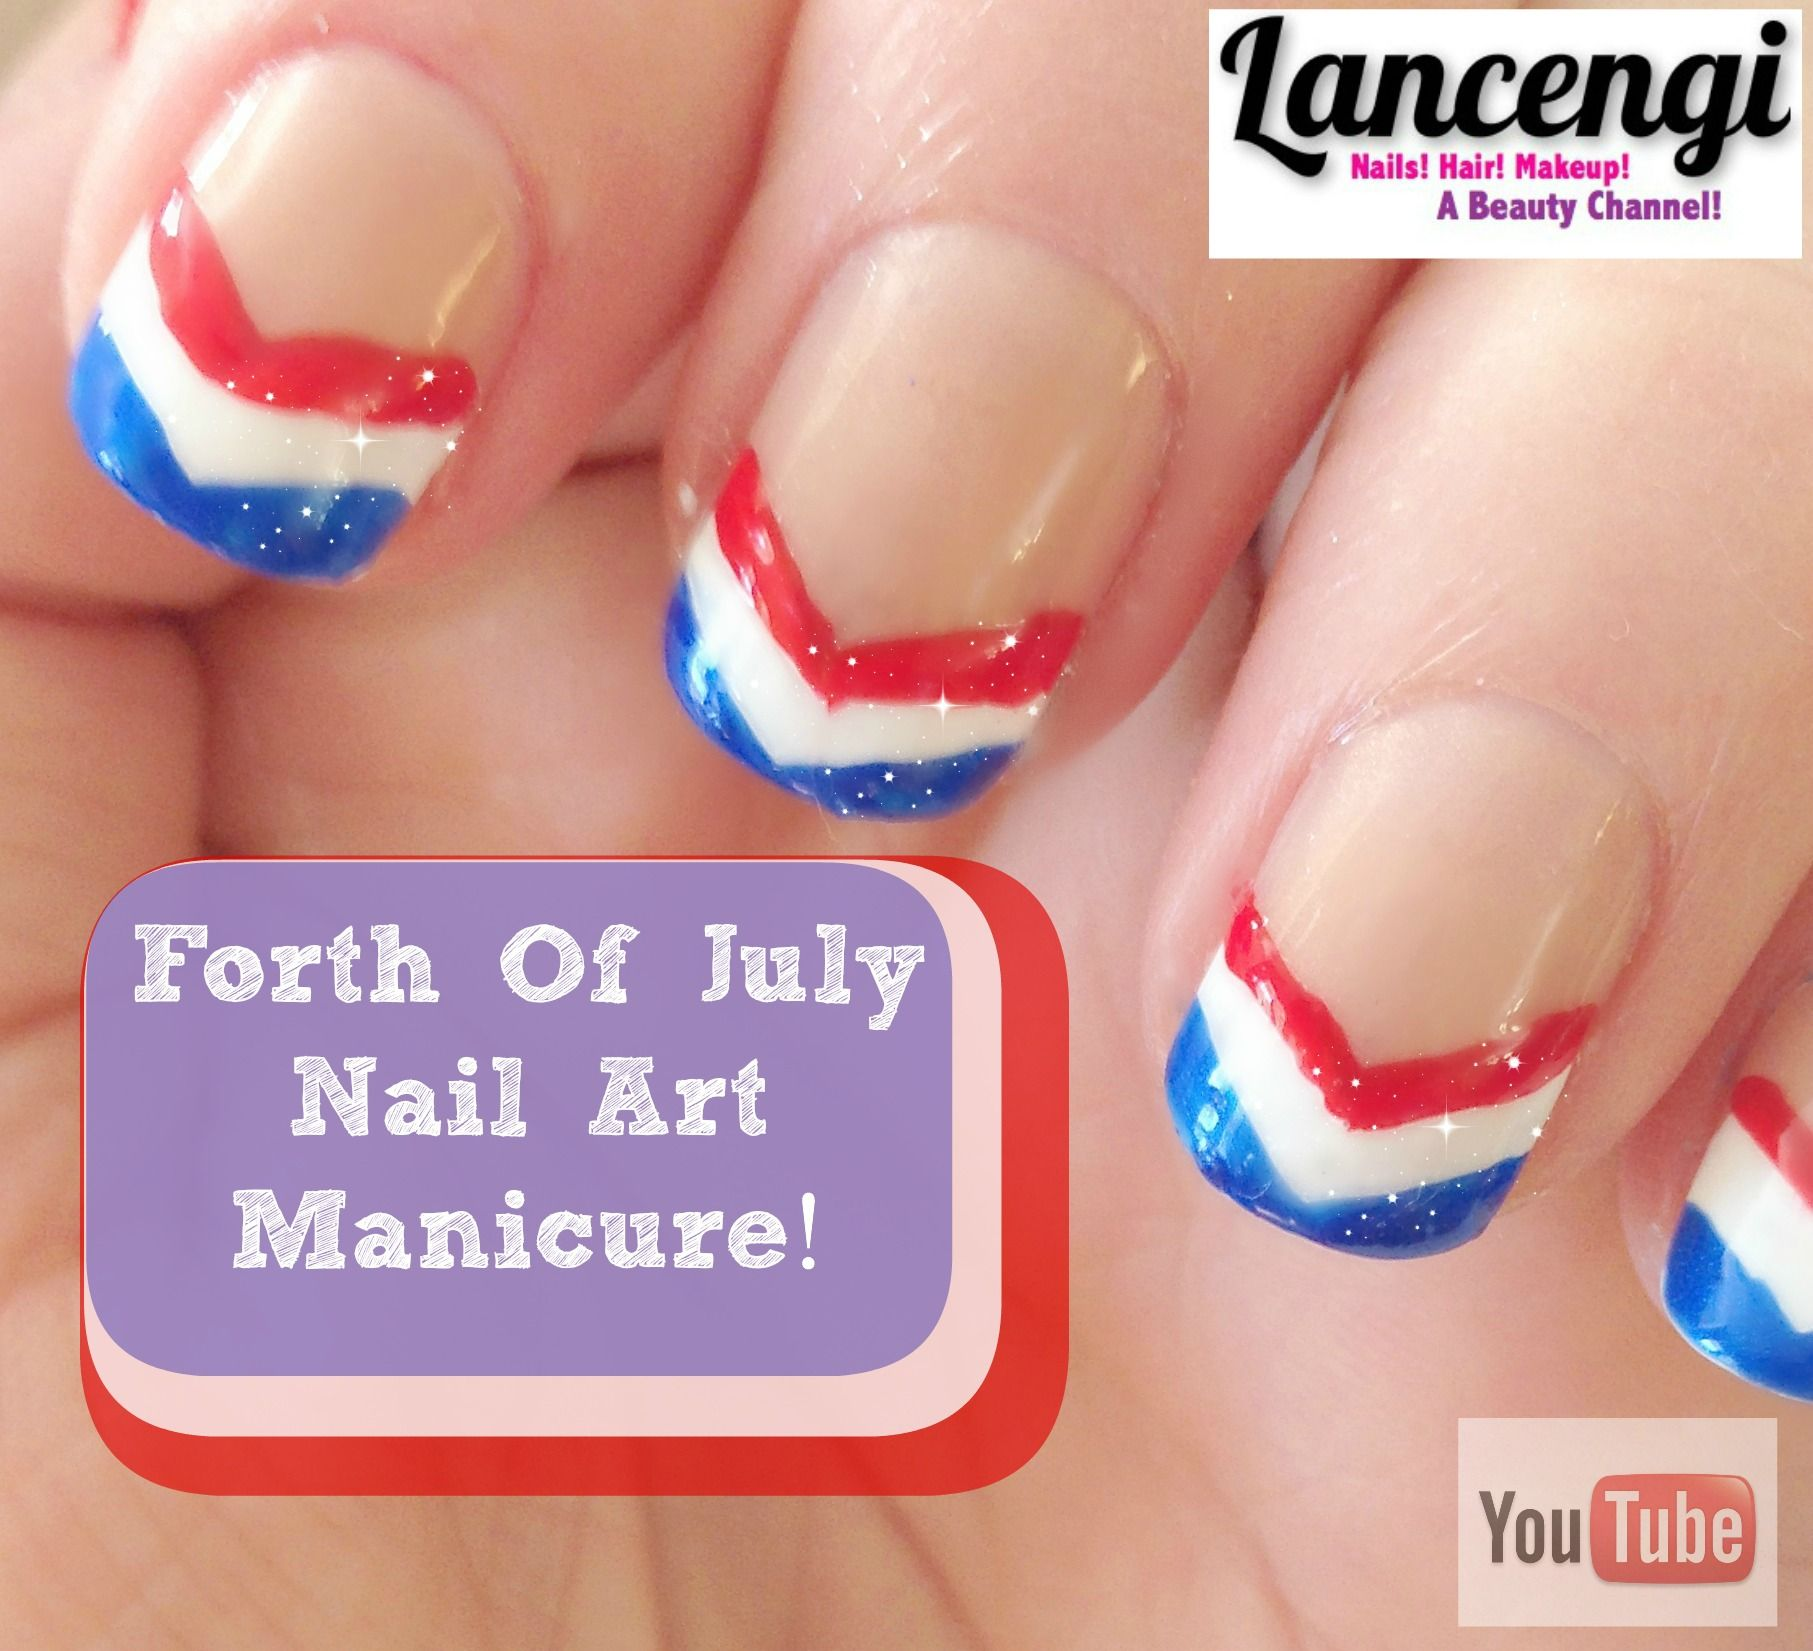 Forth Of July Nail Art Manicure #4thofJuly #ForthOfJuly